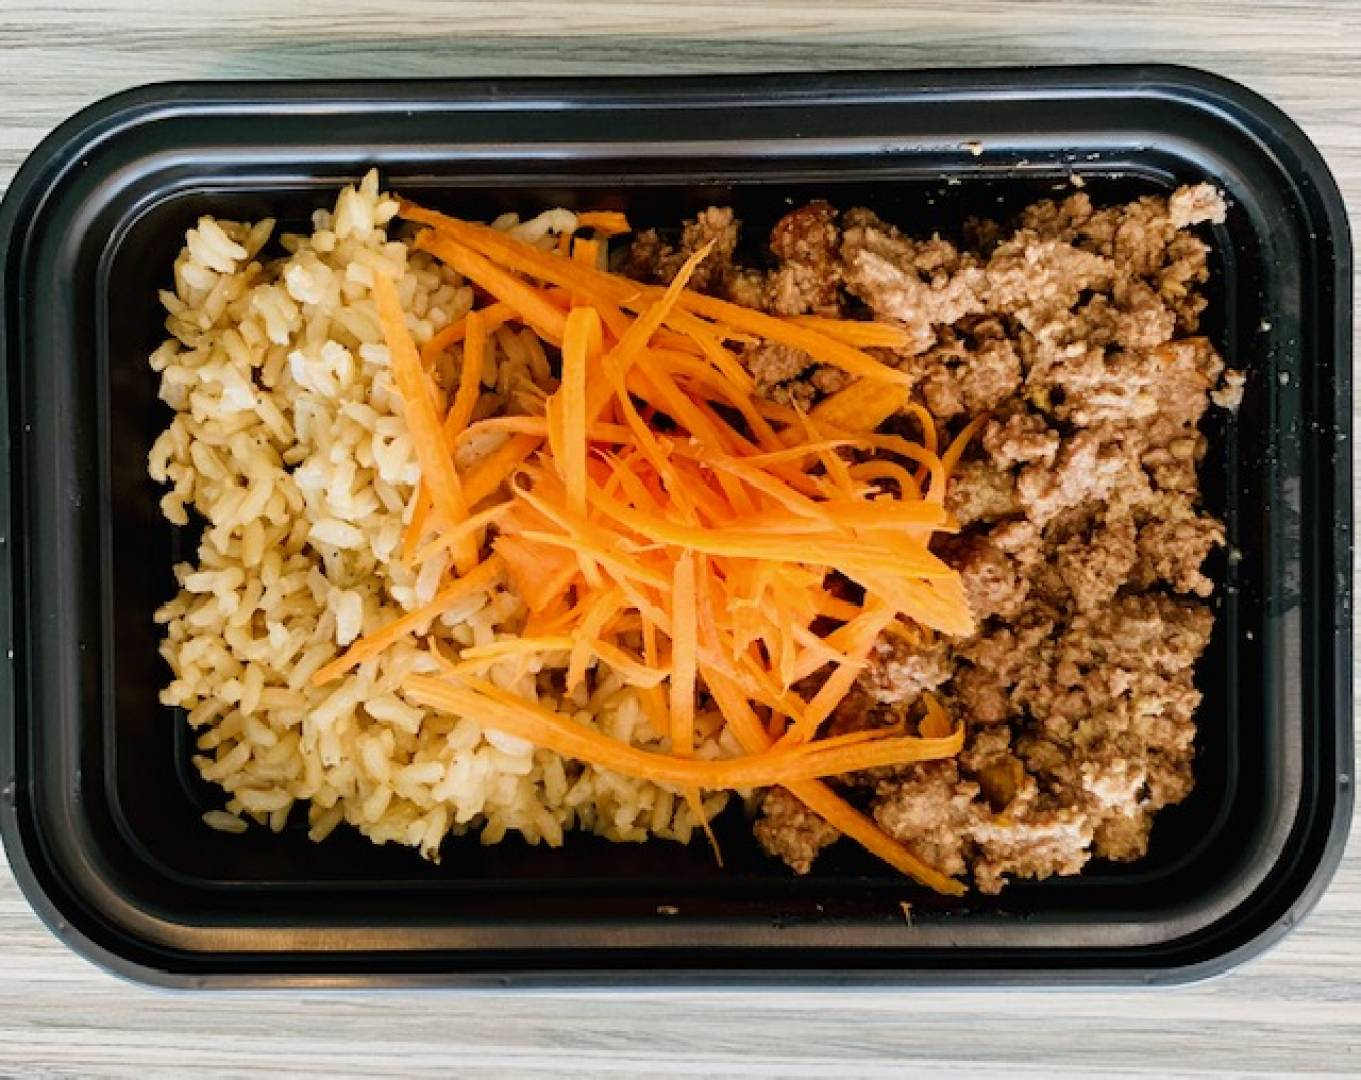 Ground Beef, Brown Rice and Carrots